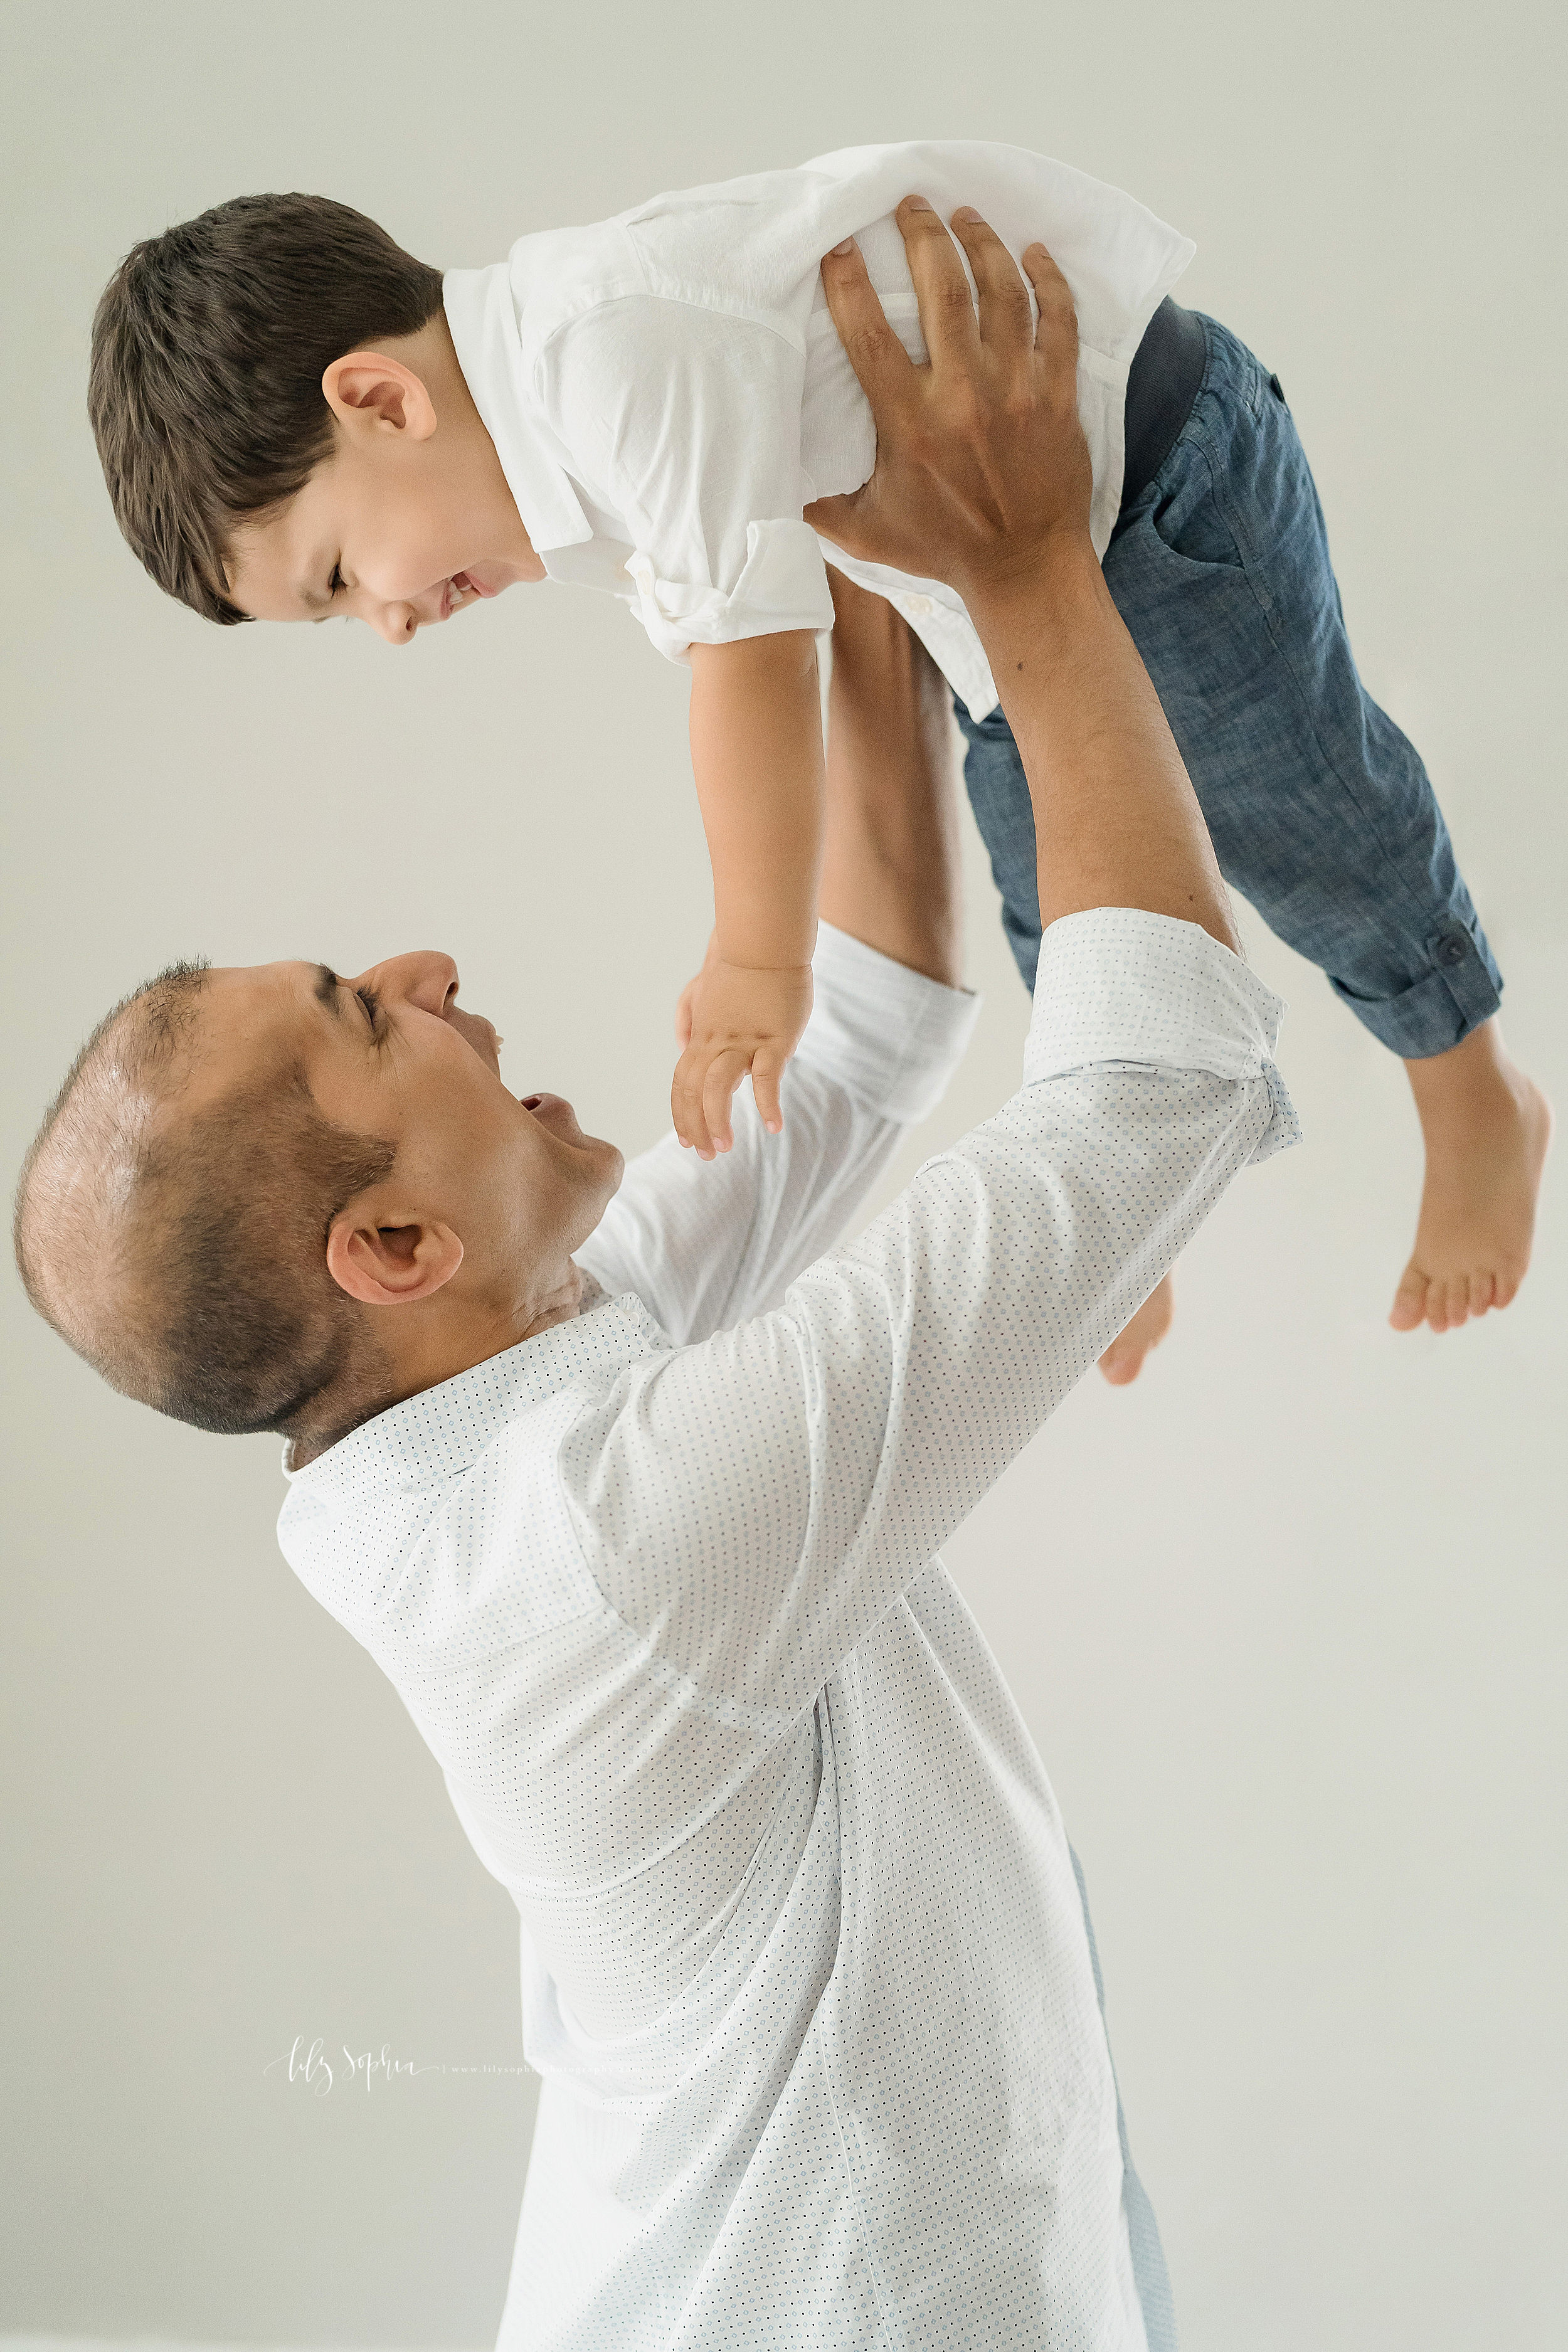 Family photo of a father lifting his son above his head as the two laugh together in an Atlanta studio.